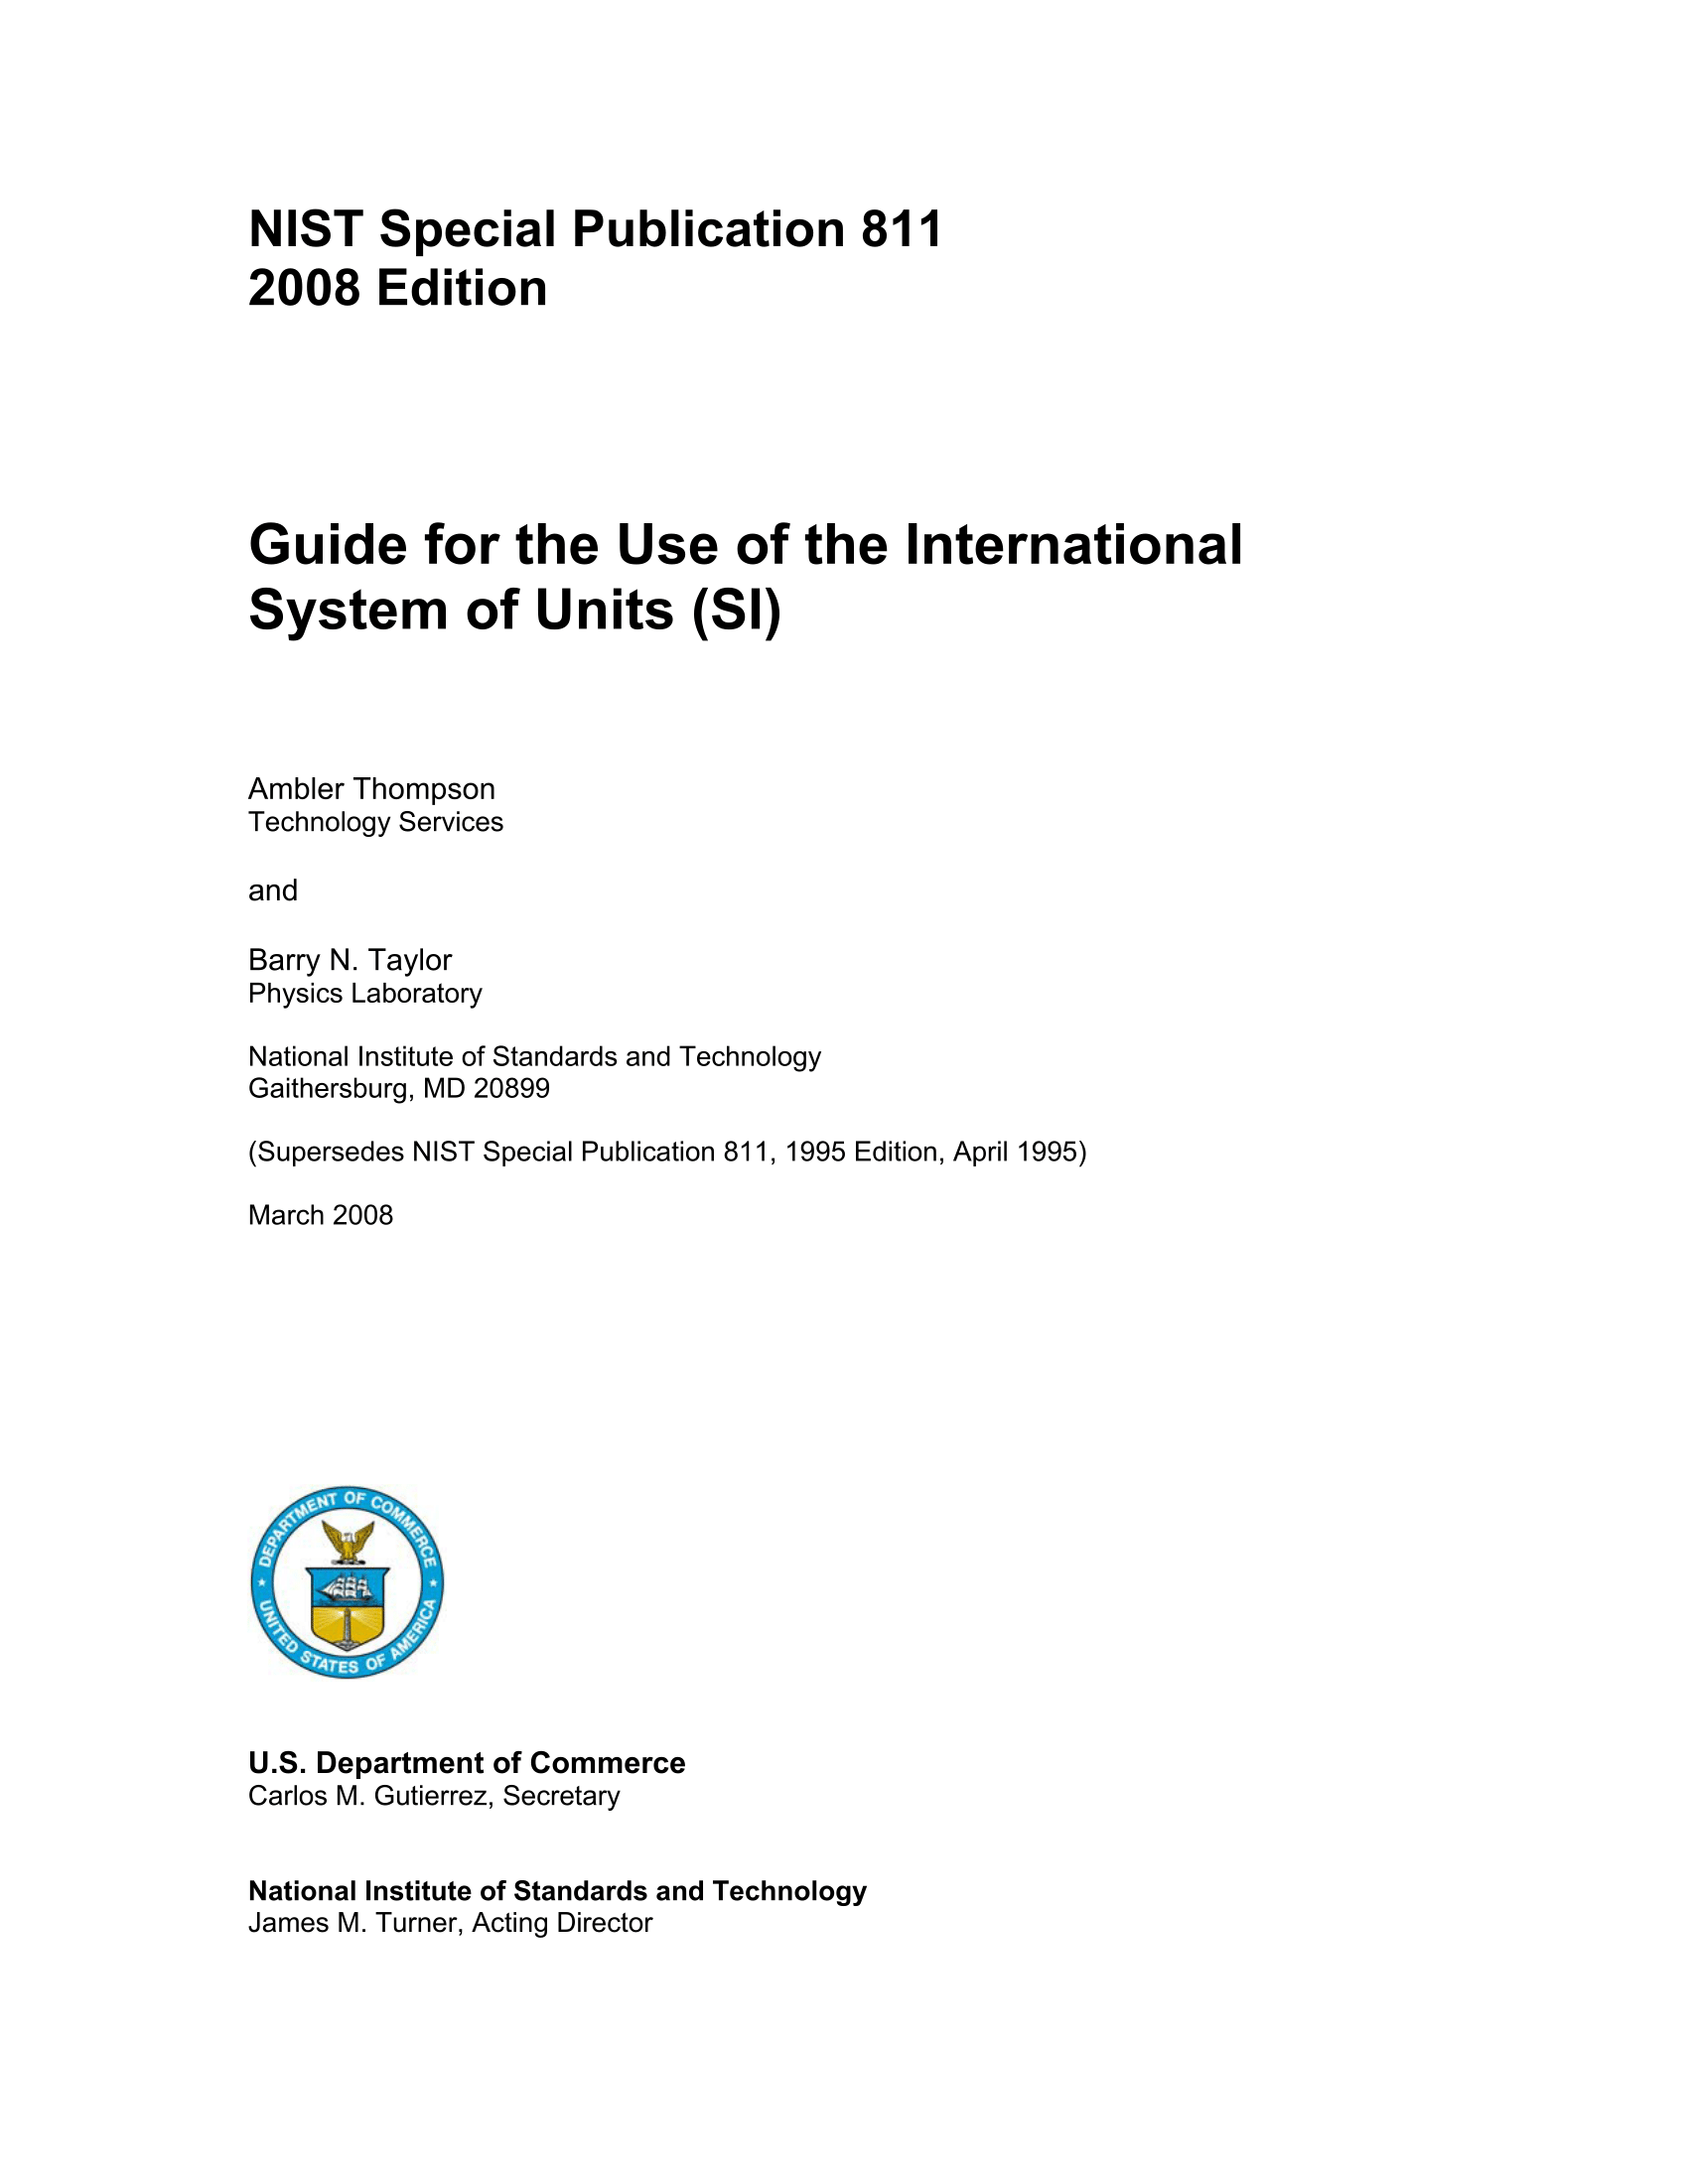 Guide_for_the_Use_of_the_International_System_of_Units-03